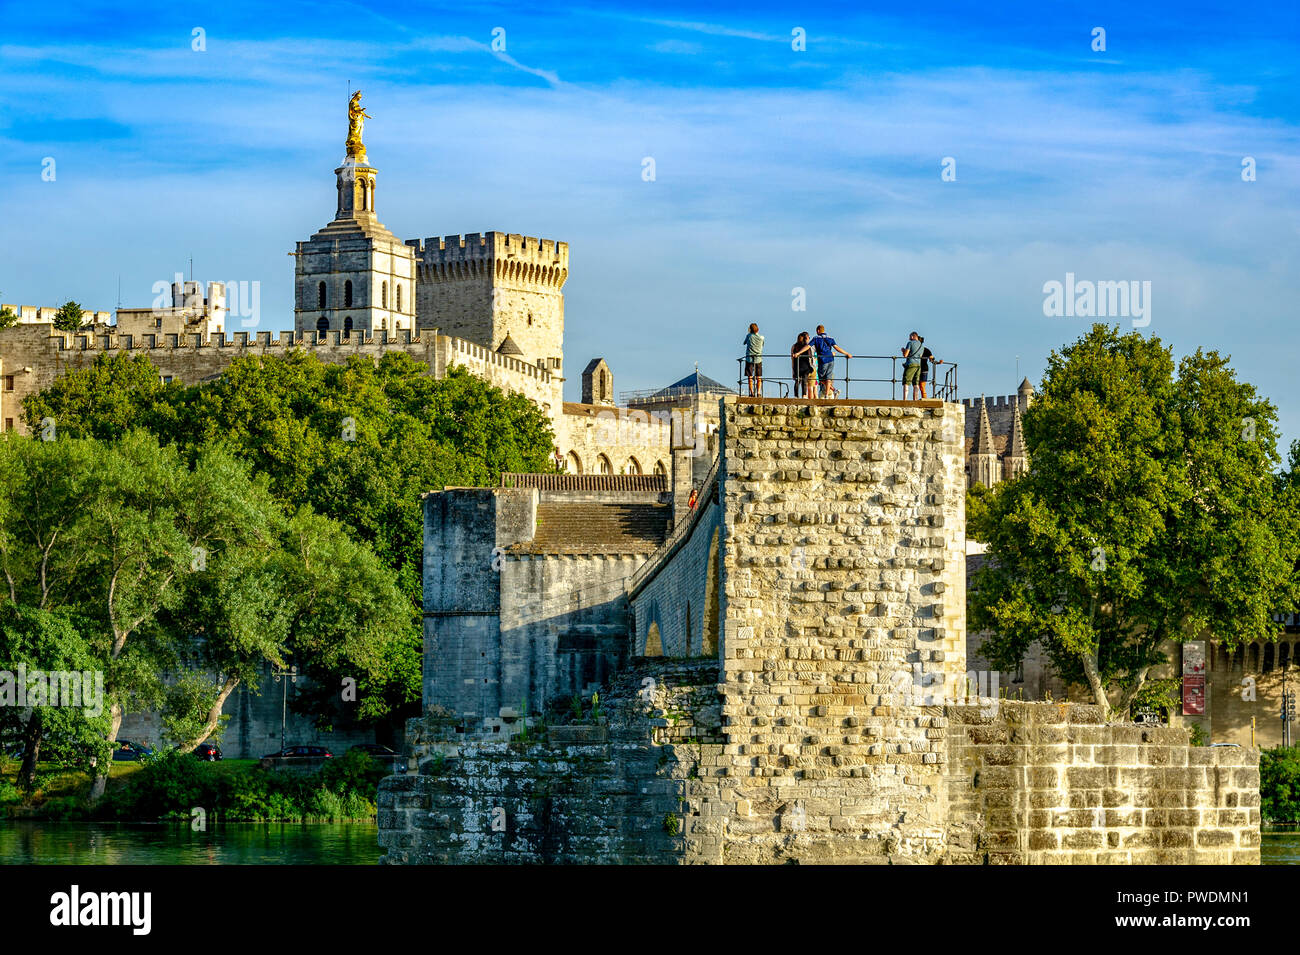 France. Vaucluse (84). Avignon. Pont Saint-Bénézet, commonly called Pont d'Avignon, built from 1177 to 1185 on the Rhone. Stock Photo